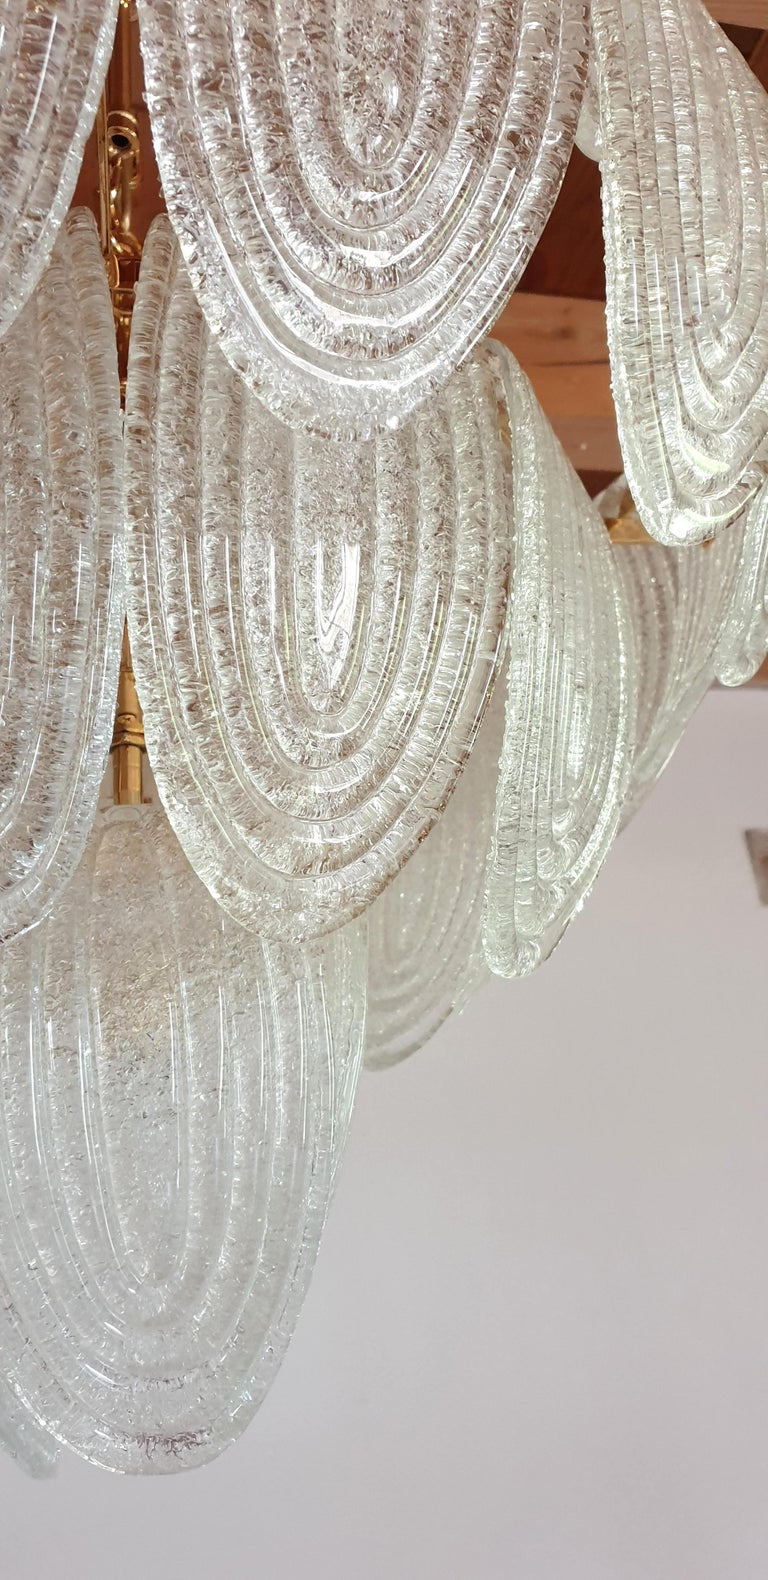 Mid-Century Modern Murano Glass and Plated Gold Chandelier Mazzega Style, a pair For Sale 7